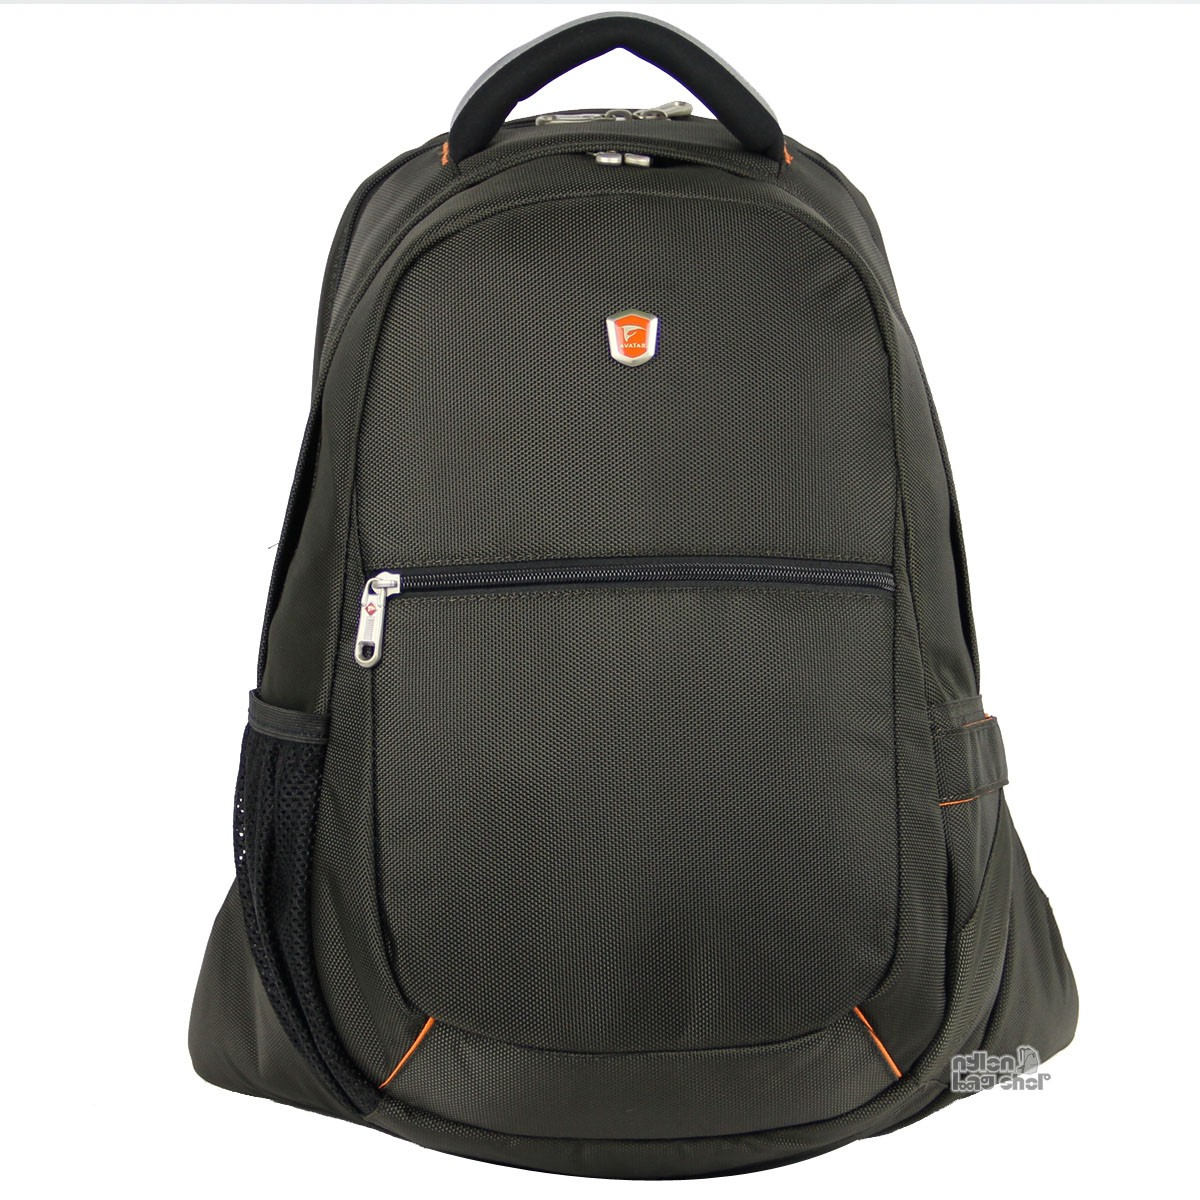 14 Laptop Backpack gWEyMzfK